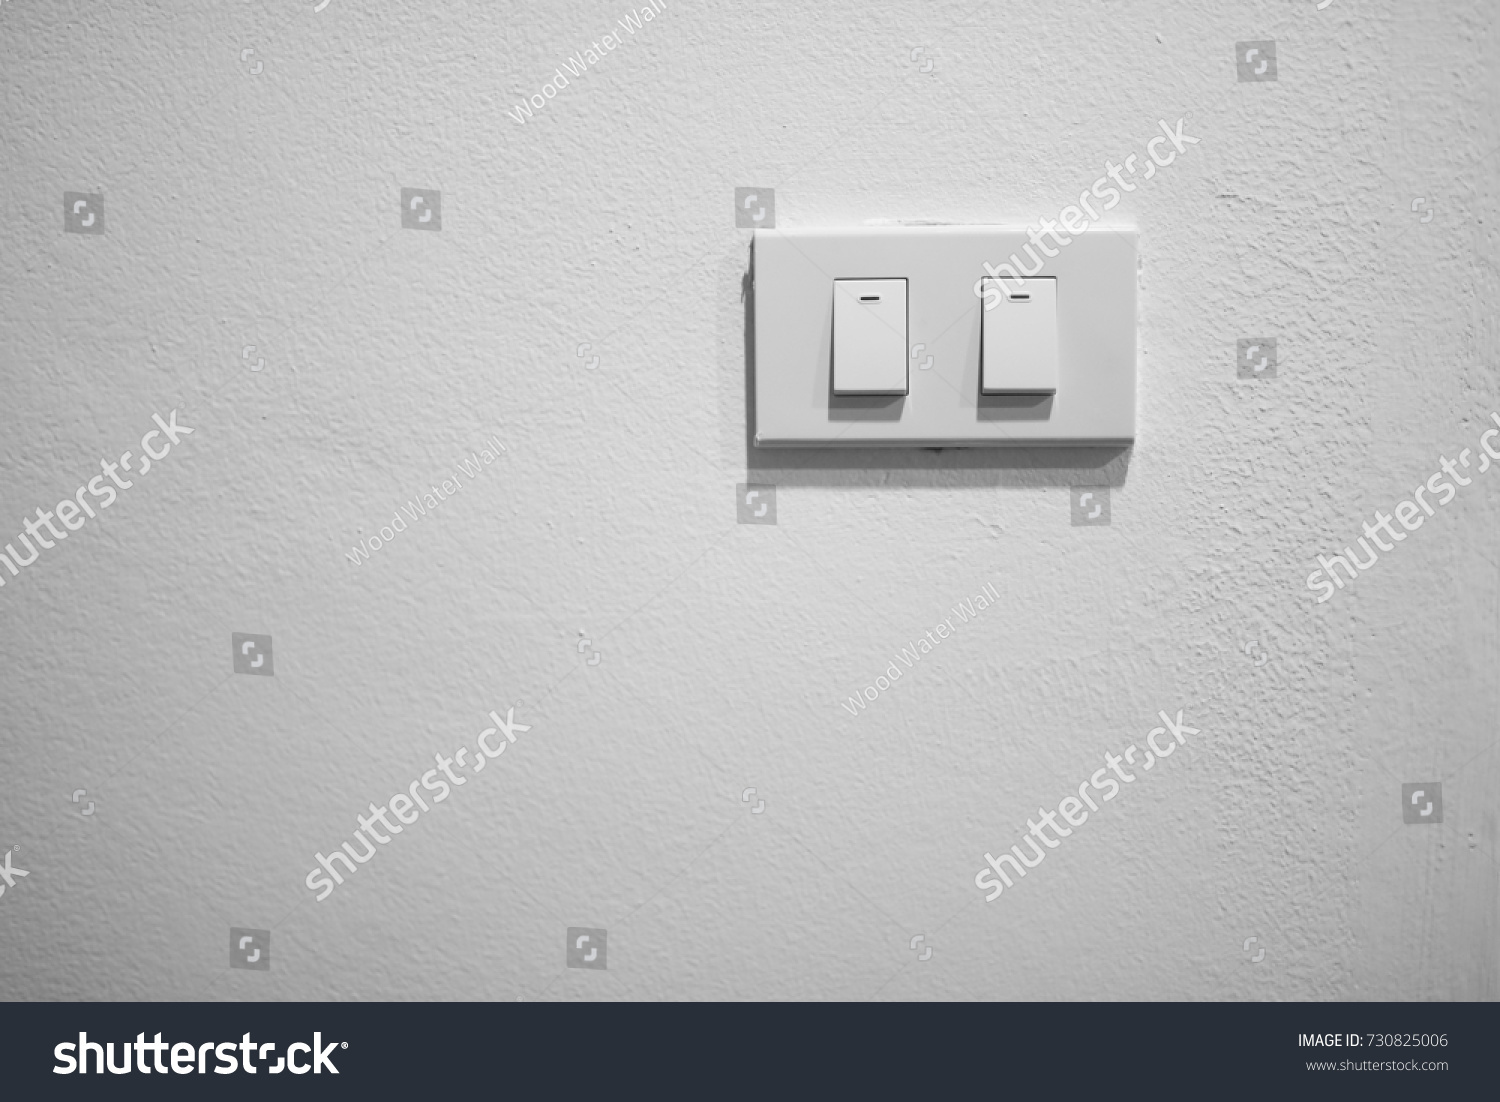 Charming Electrical Switch Brands Gallery - Simple Wiring Diagram ...